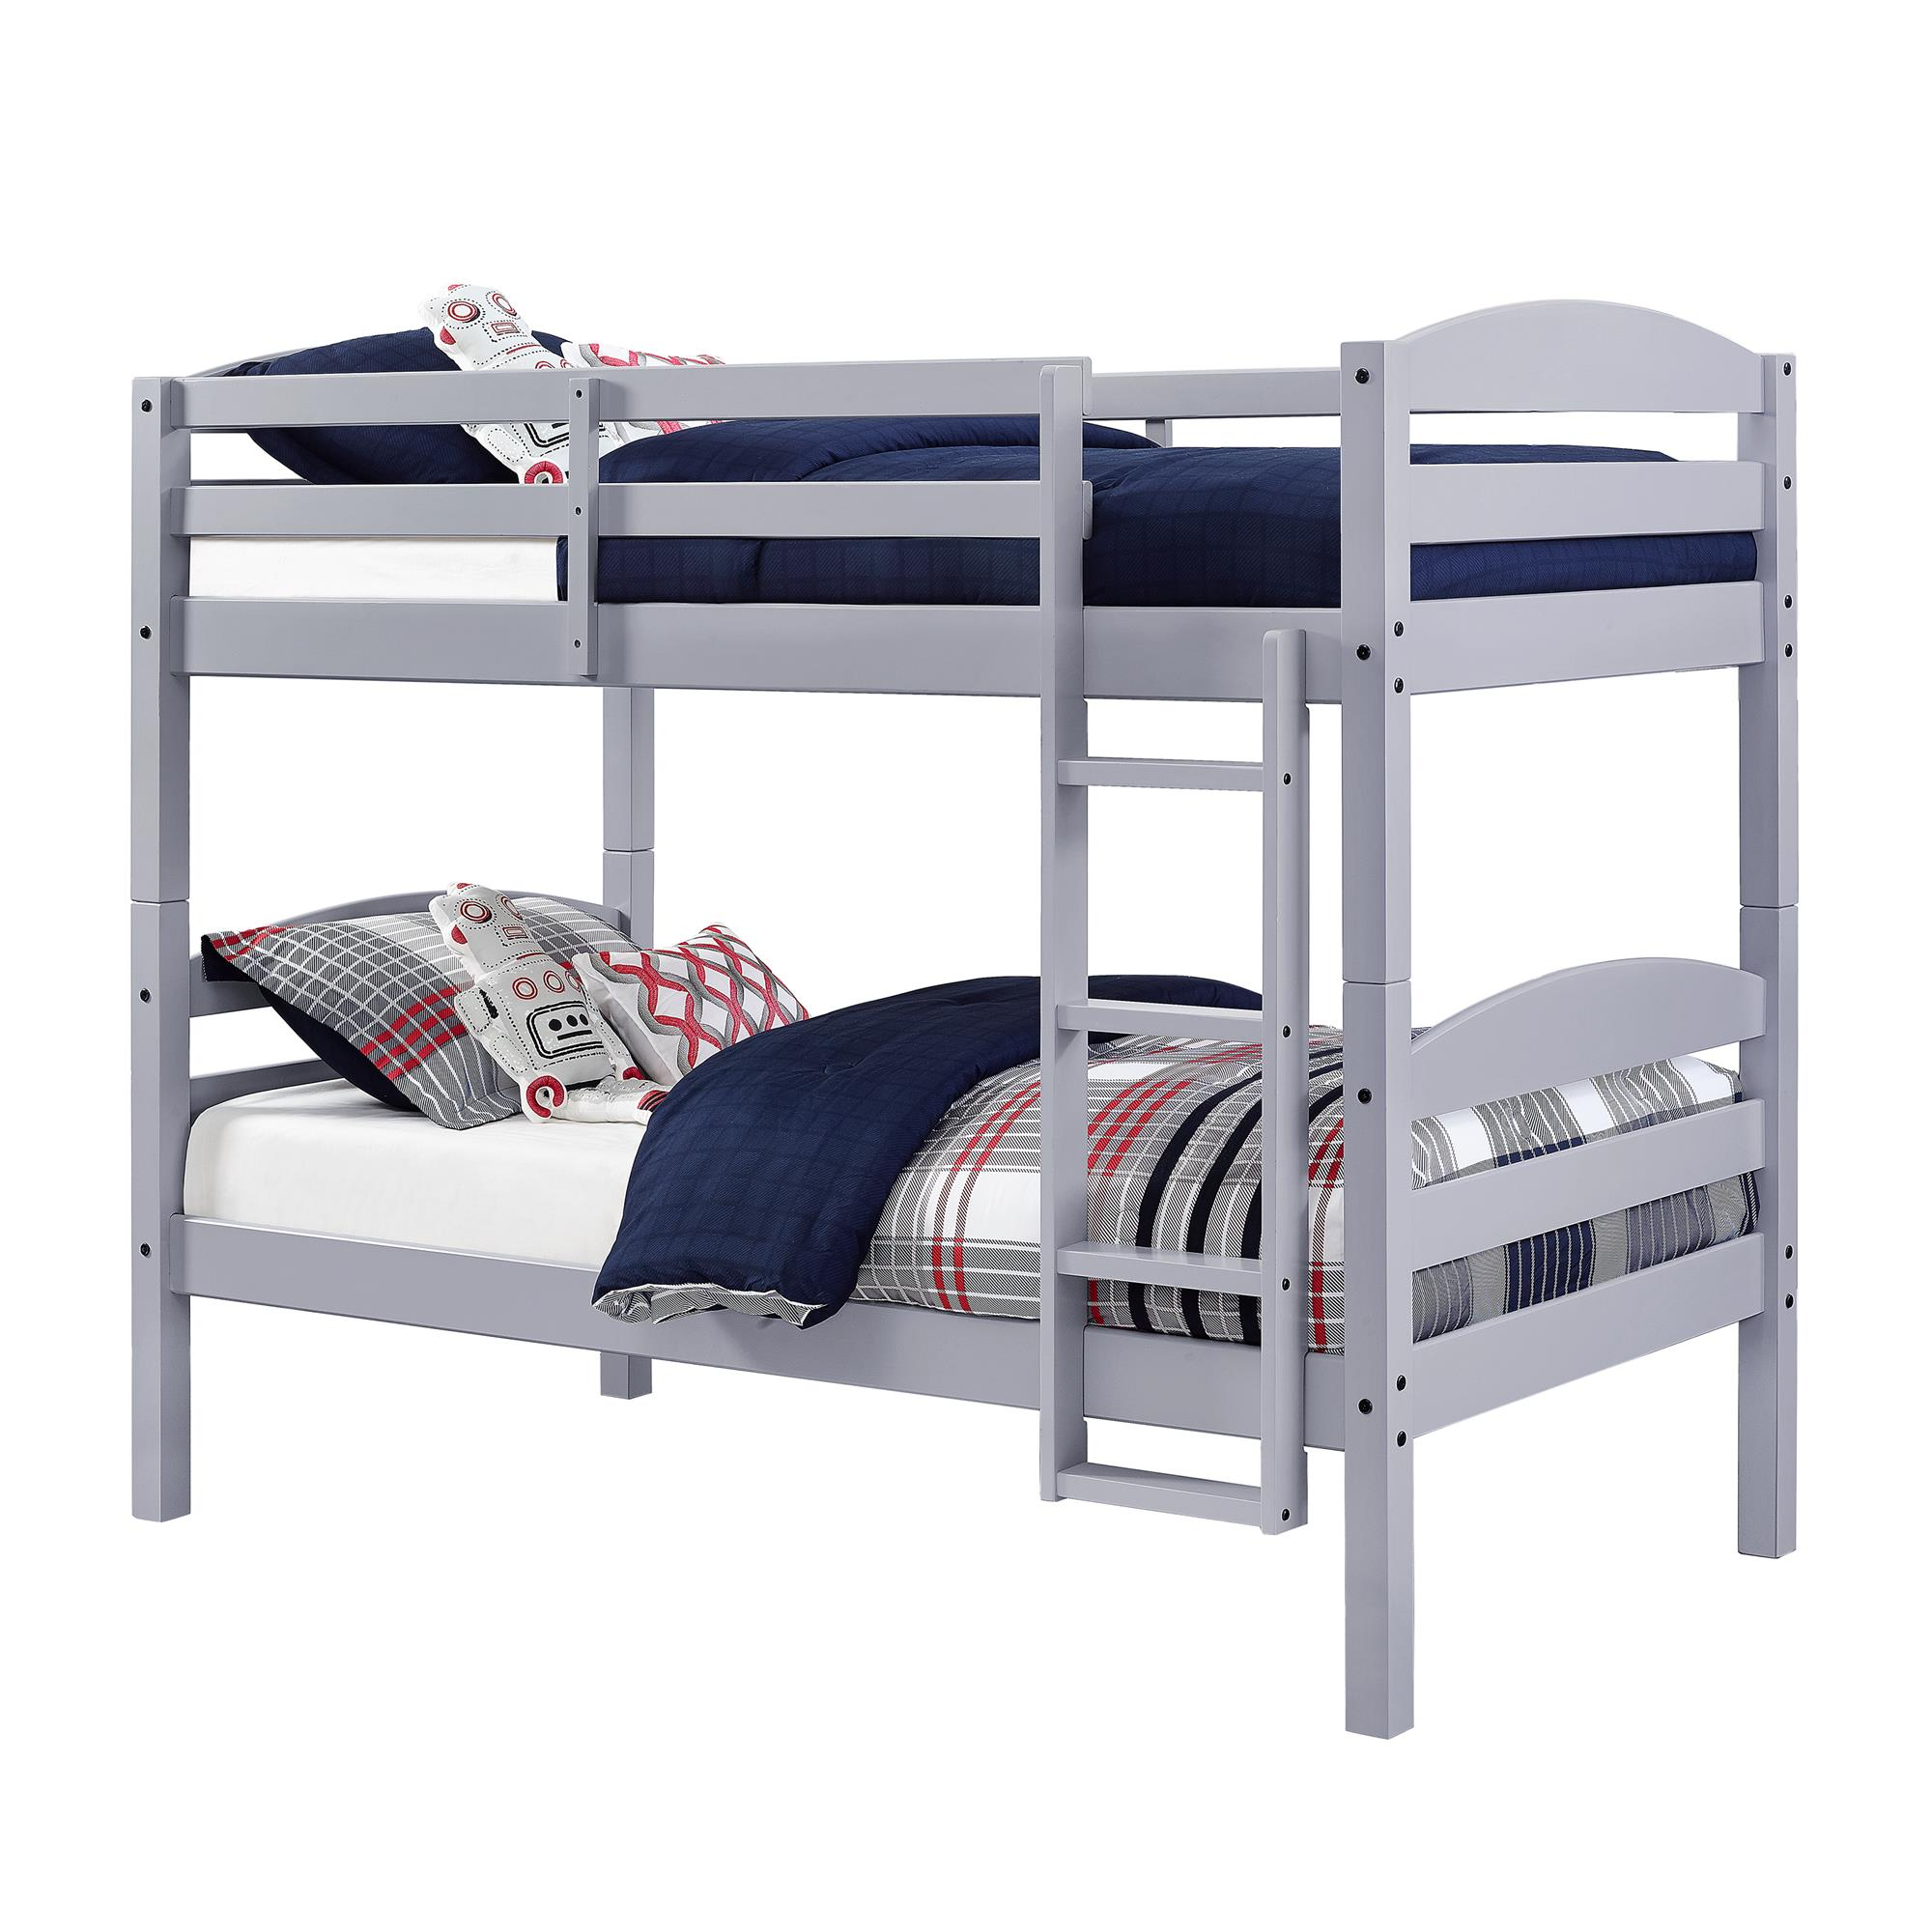 modern contemporary twin size spacesaver wood bunk bed home dorm double bed gray ebay. Black Bedroom Furniture Sets. Home Design Ideas